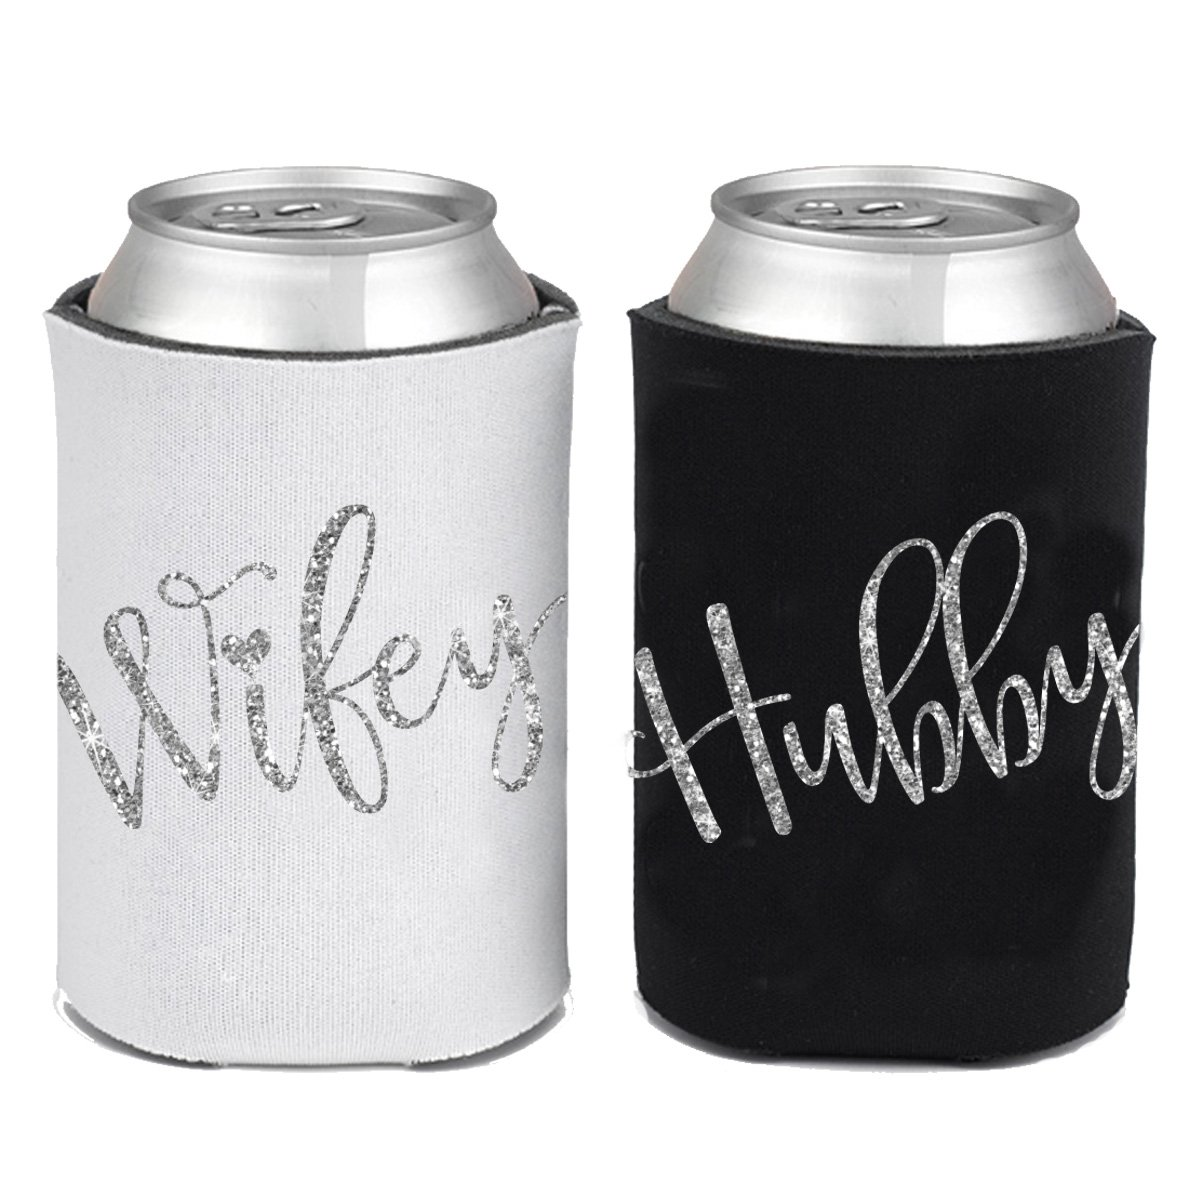 Amazon.com: Bride and Groom Can Coolie Can KOOZIE Set for Wedding ...